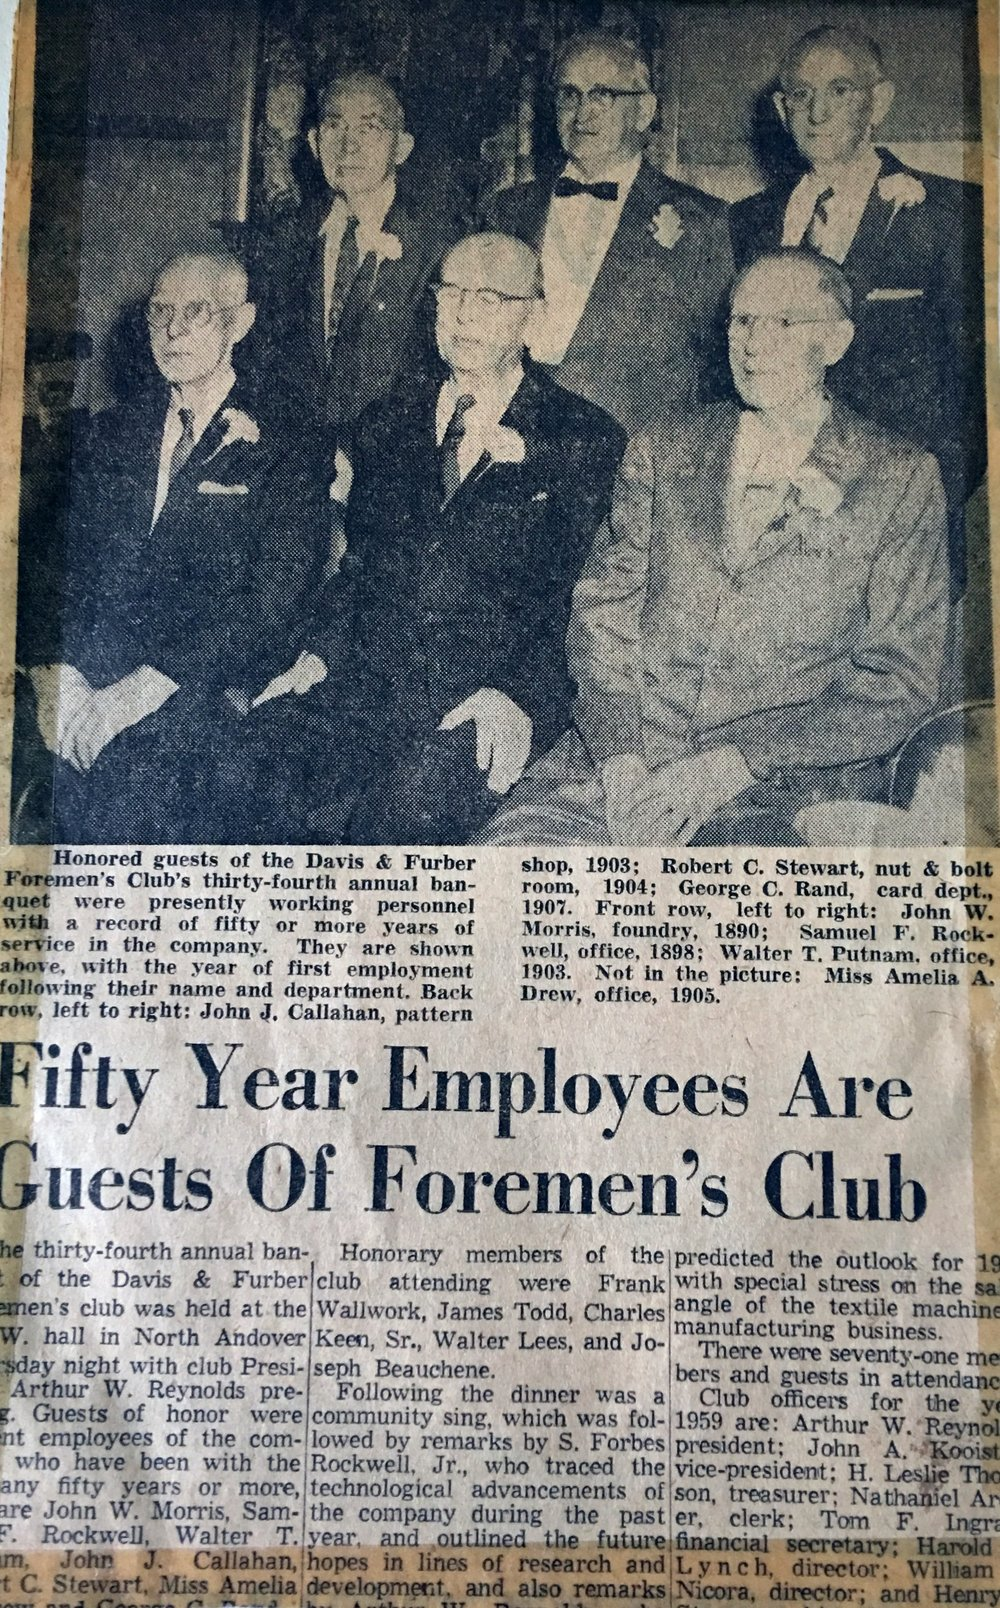 50 Year Employees guests of Foreman's club.jpg